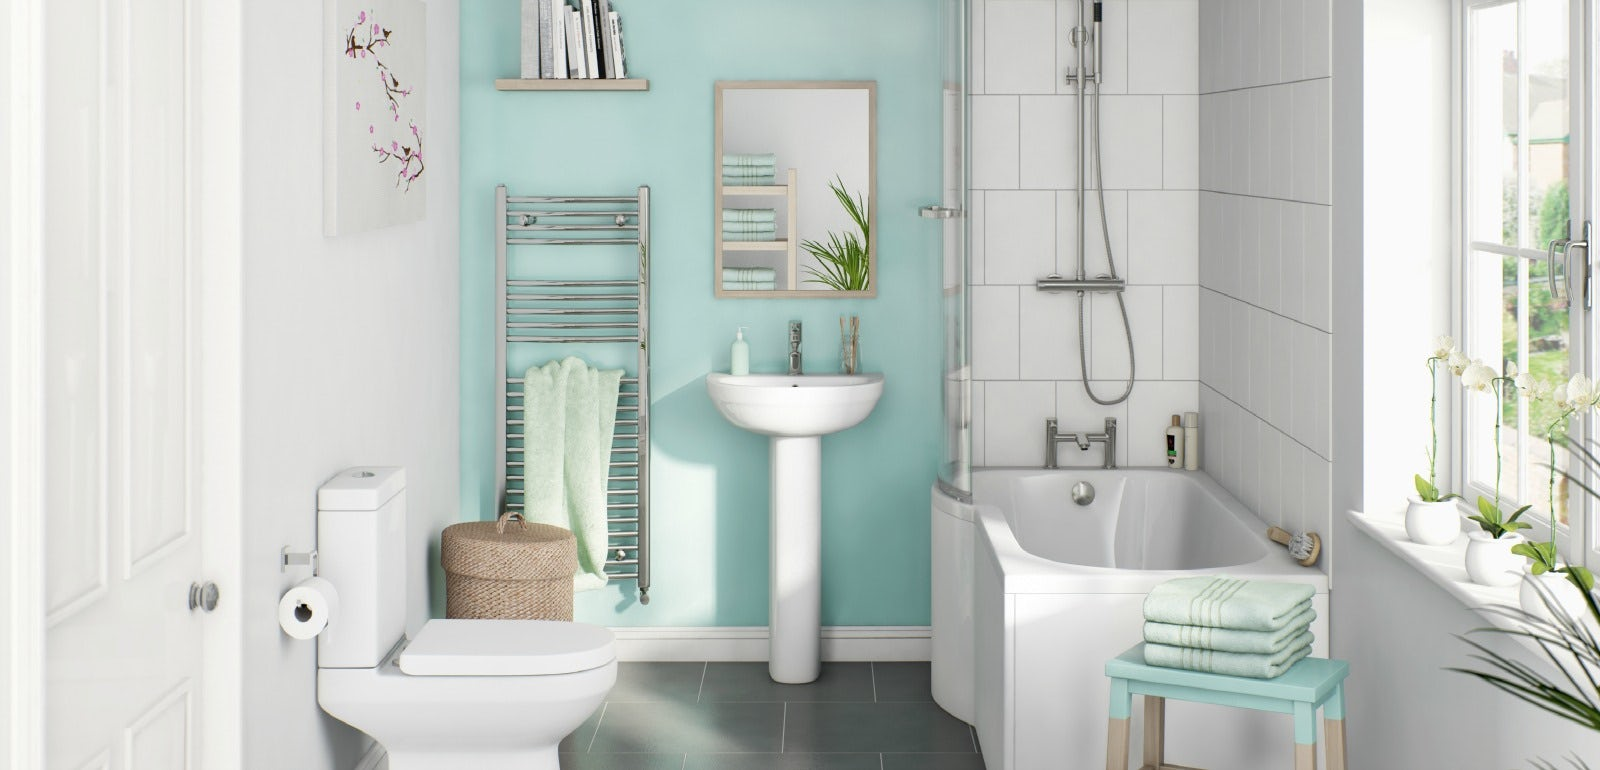 How to create a family friendly bathroom for Small bathroom natural